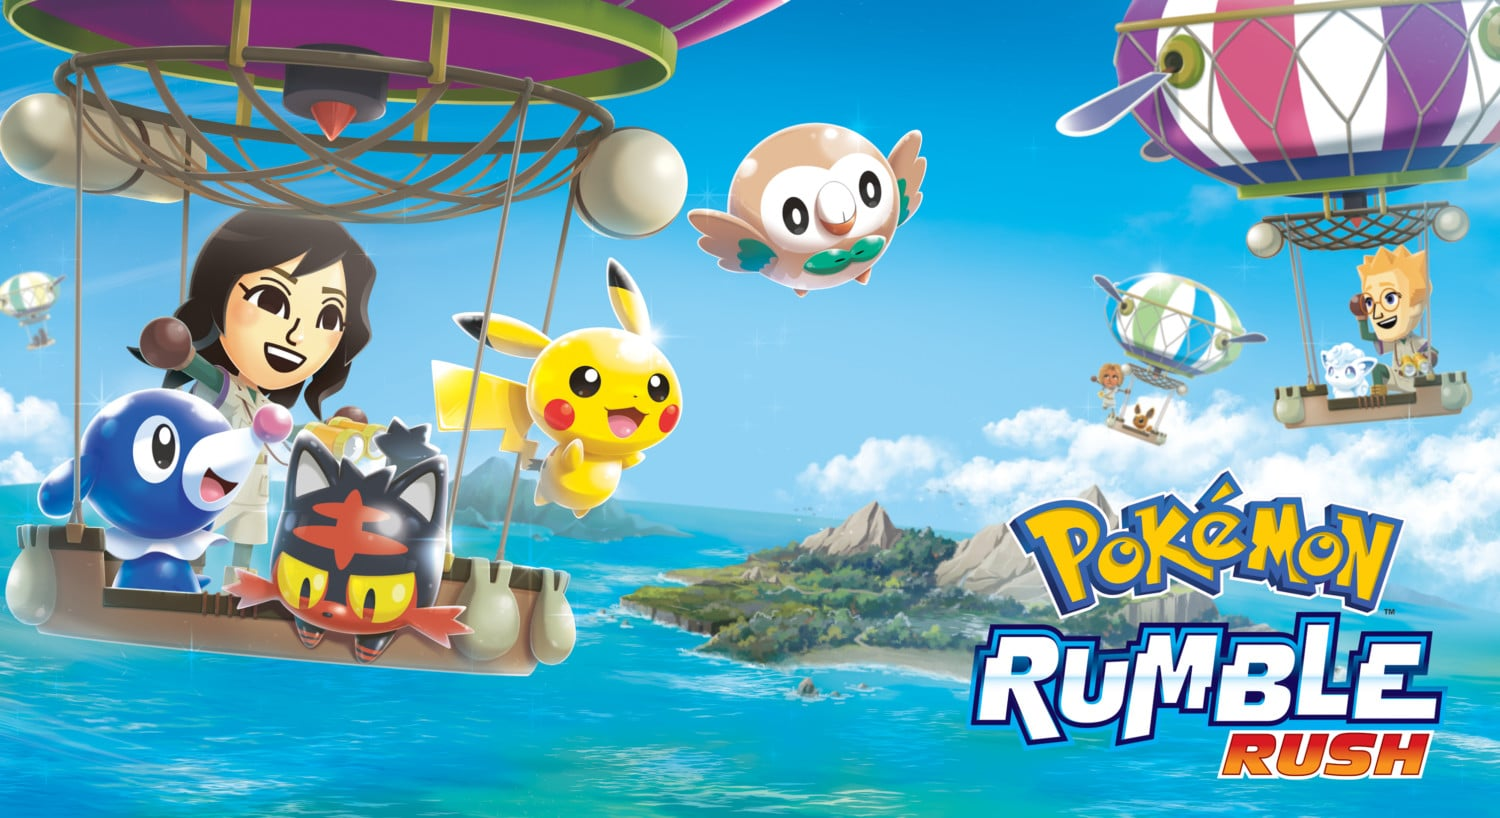 Pokemon Rumble Rush revealed for smartphones – Now available